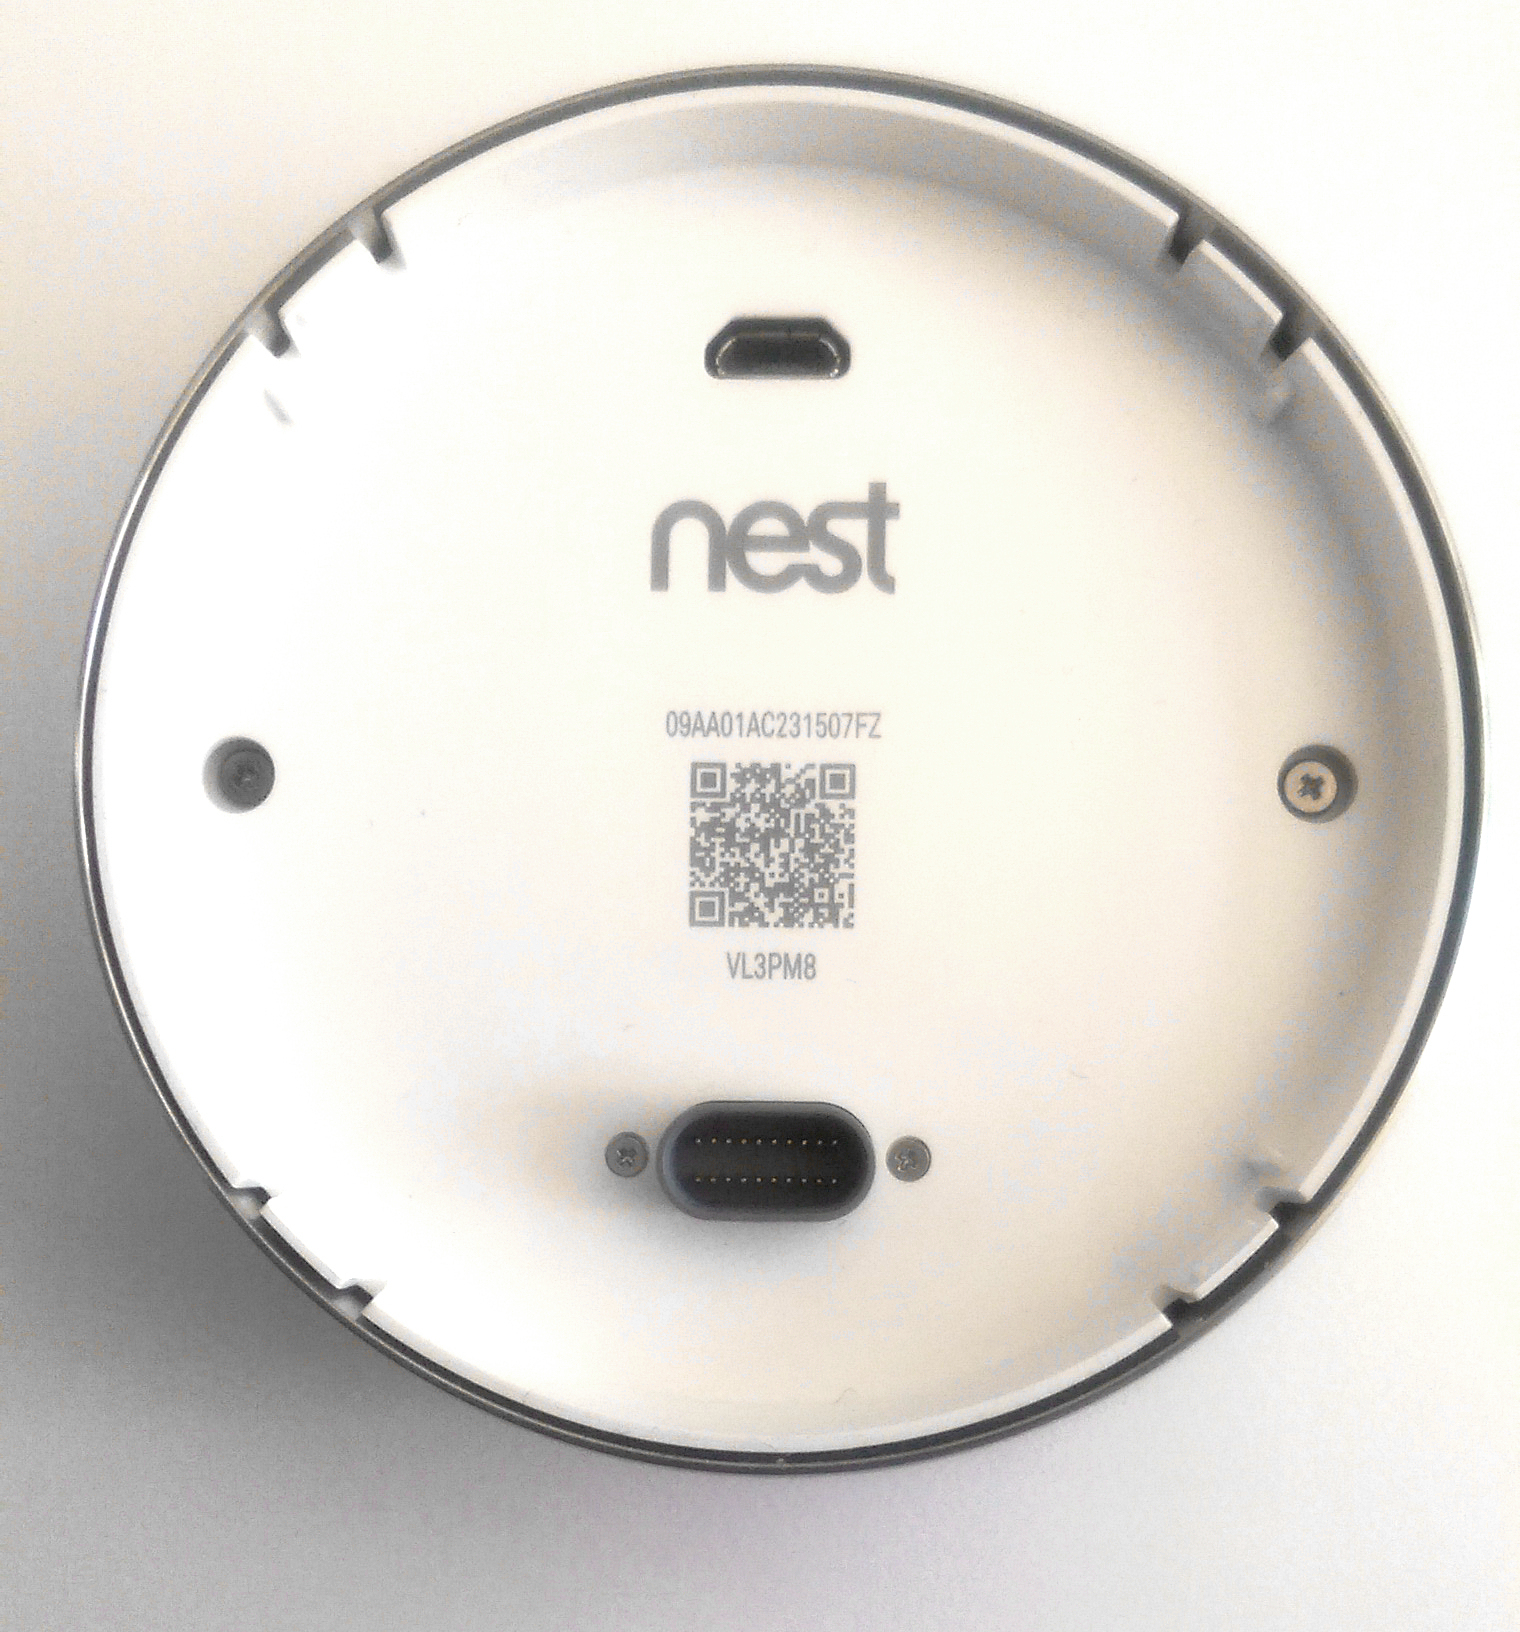 Nest Learning Thermostat Advanced Installation And Setup Help For - Nest Pro Thermostat Wiring Diagram